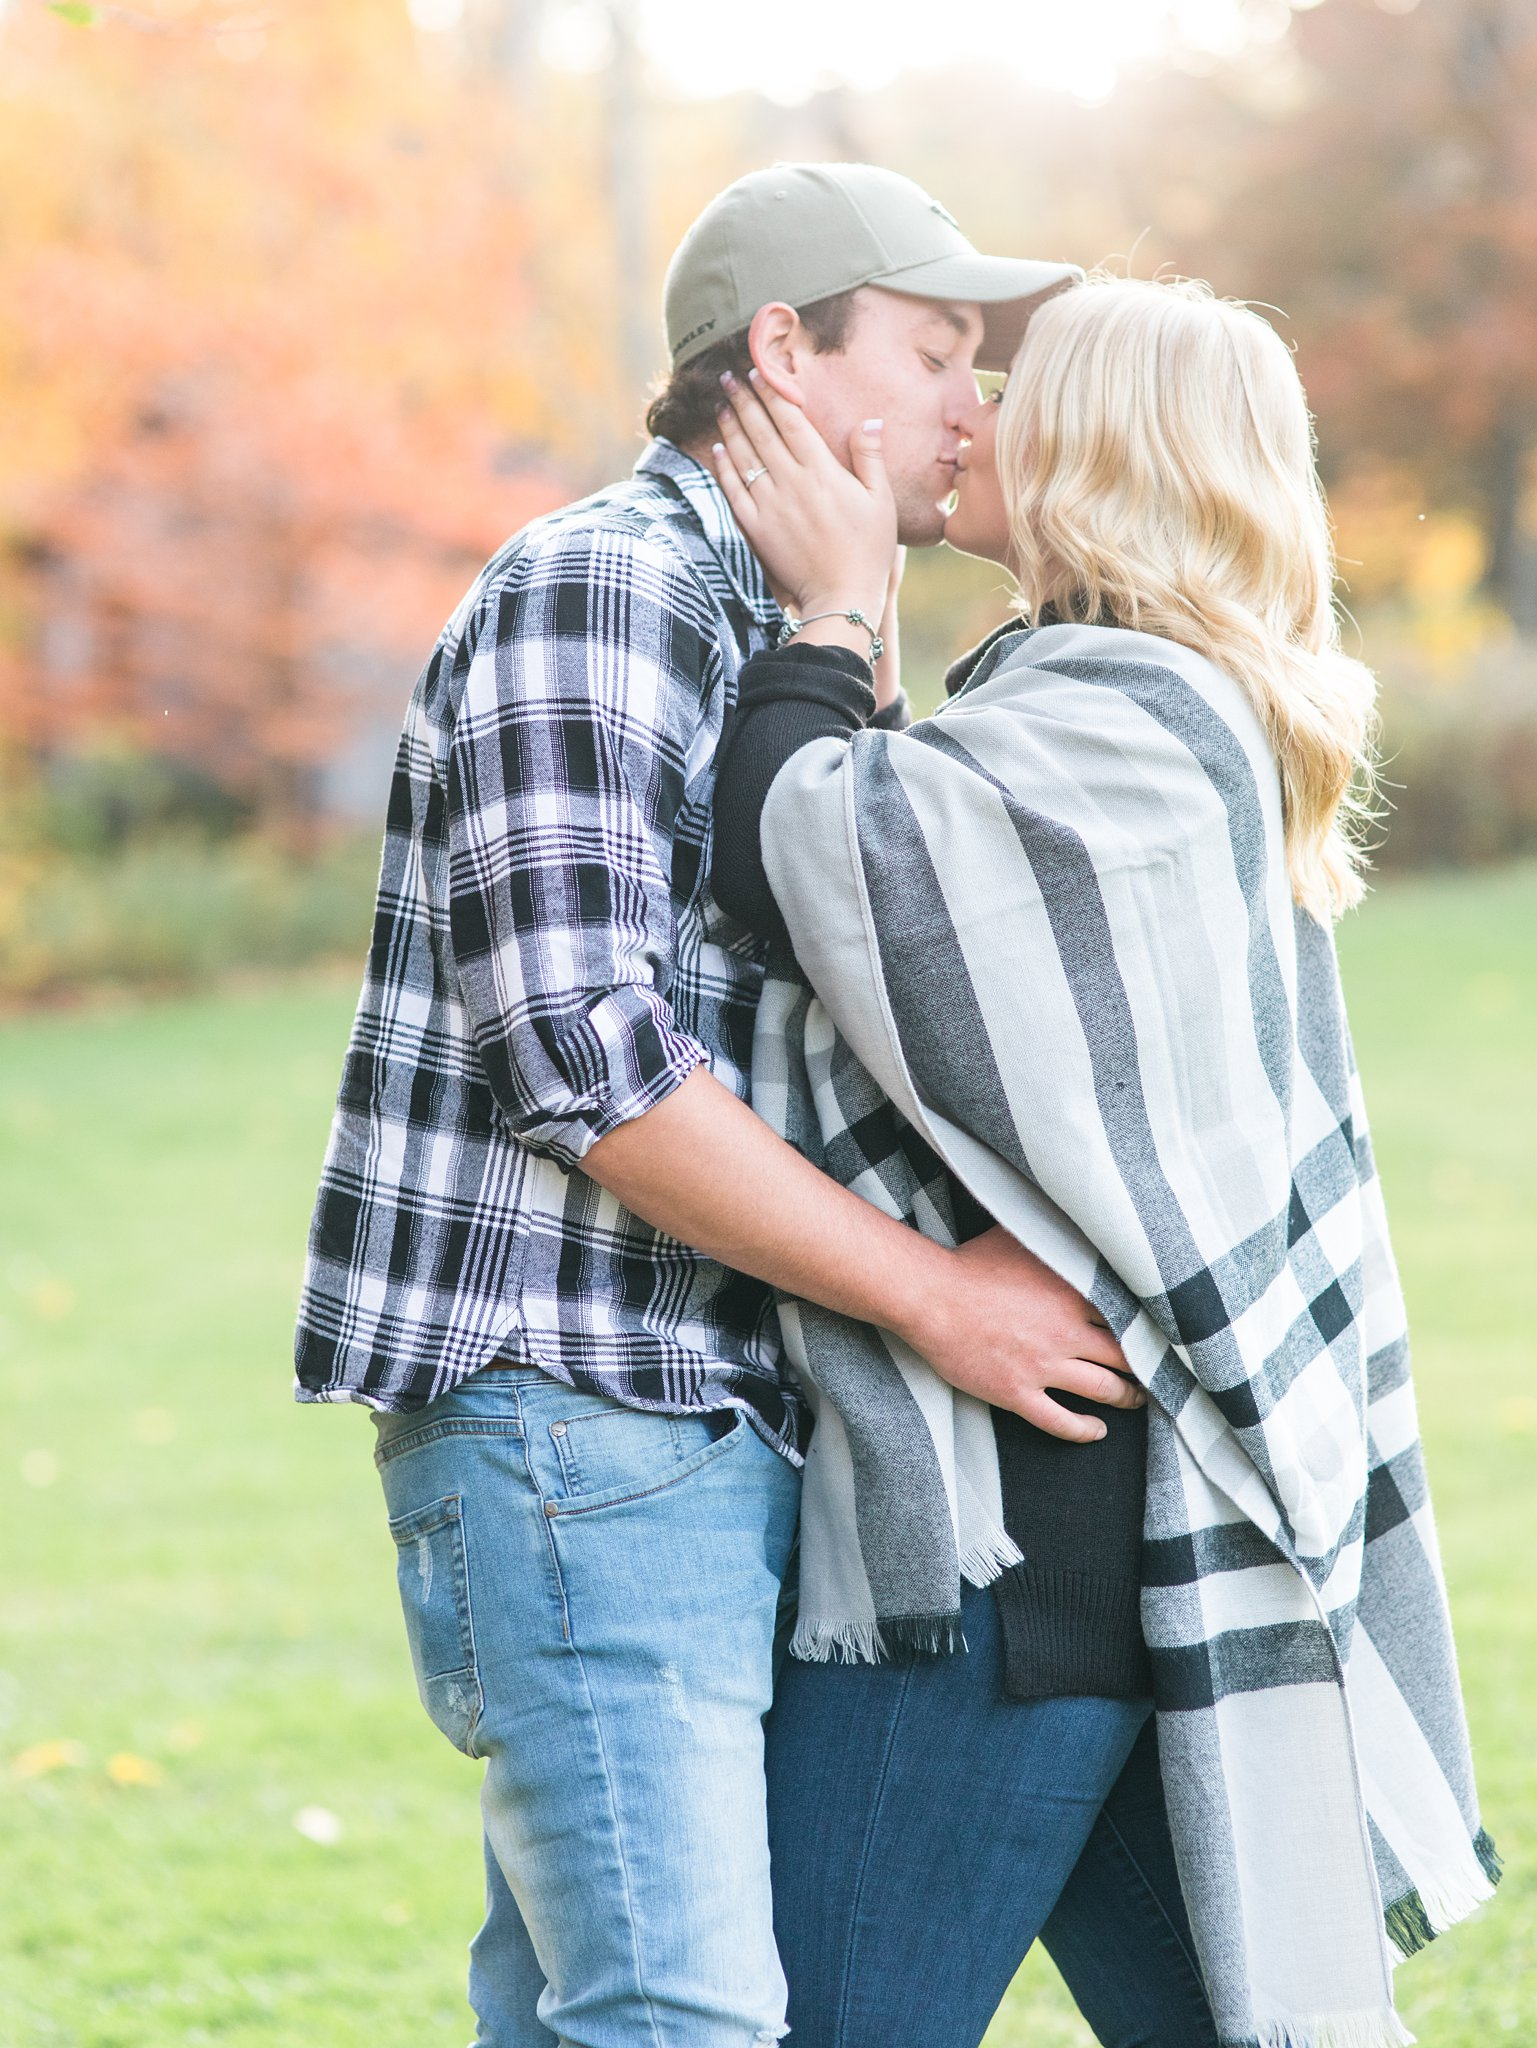 Sunset photos in fall Old Chelsea Engagement Photos by Amy Pinder Photography